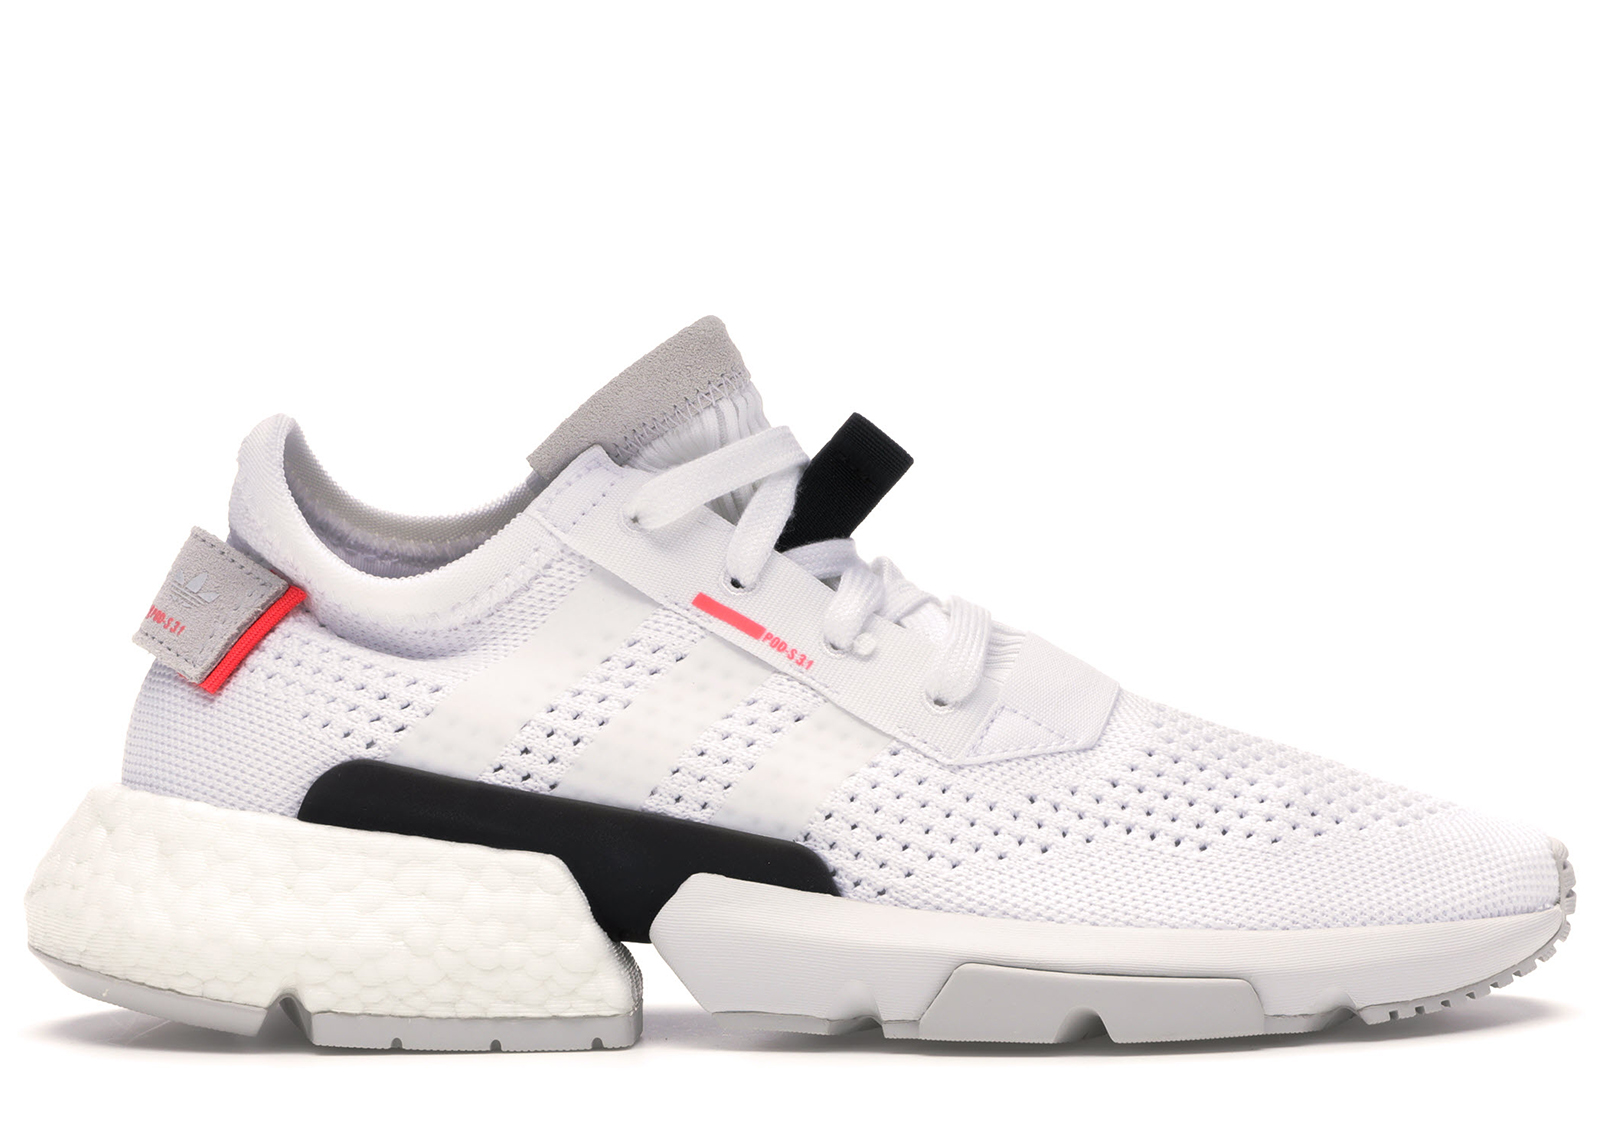 adidas POD-S3.1 Cloud White Shock Red